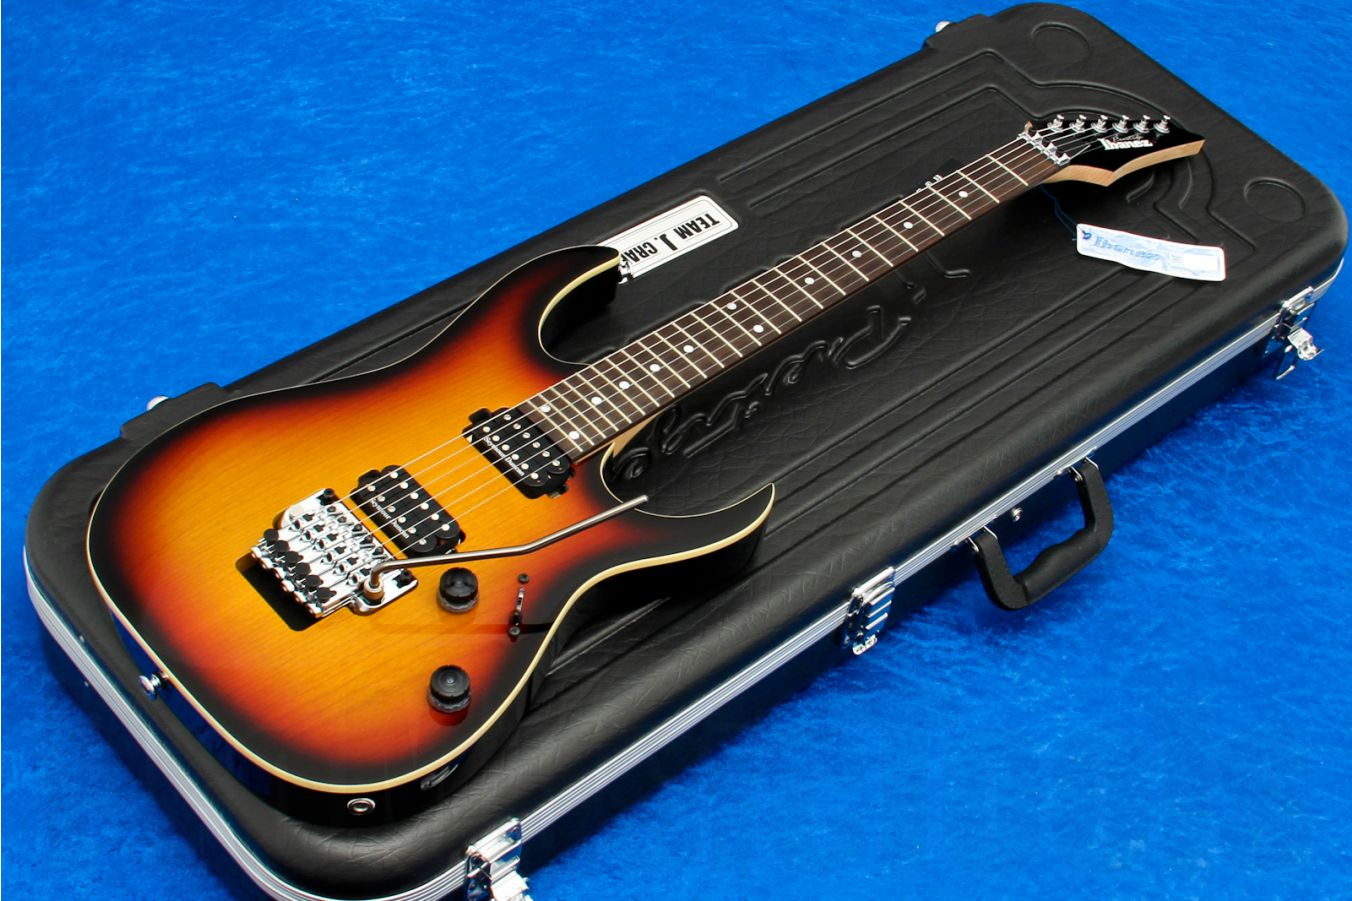 Ibanez RG2820ZD Prestige Limited Edition TFB - Tri Fade Burst (only 15 made)